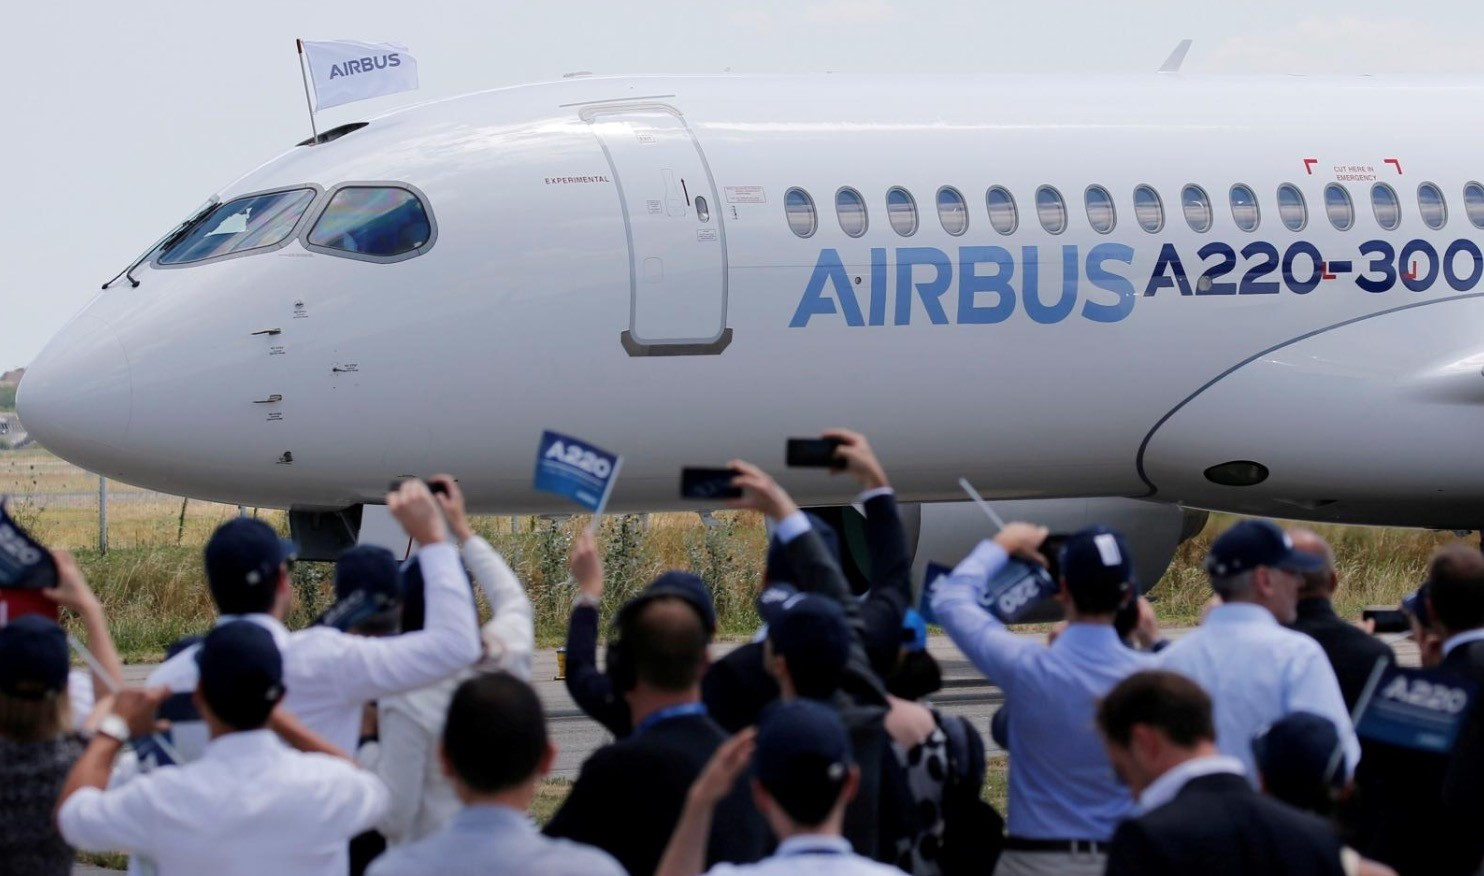 Airbus members celebrate the landing of an Airbus A220-300 aircraft during its presentation in Colomiers near Toulouse, France, July 10, 2018. (Reuters Photo)